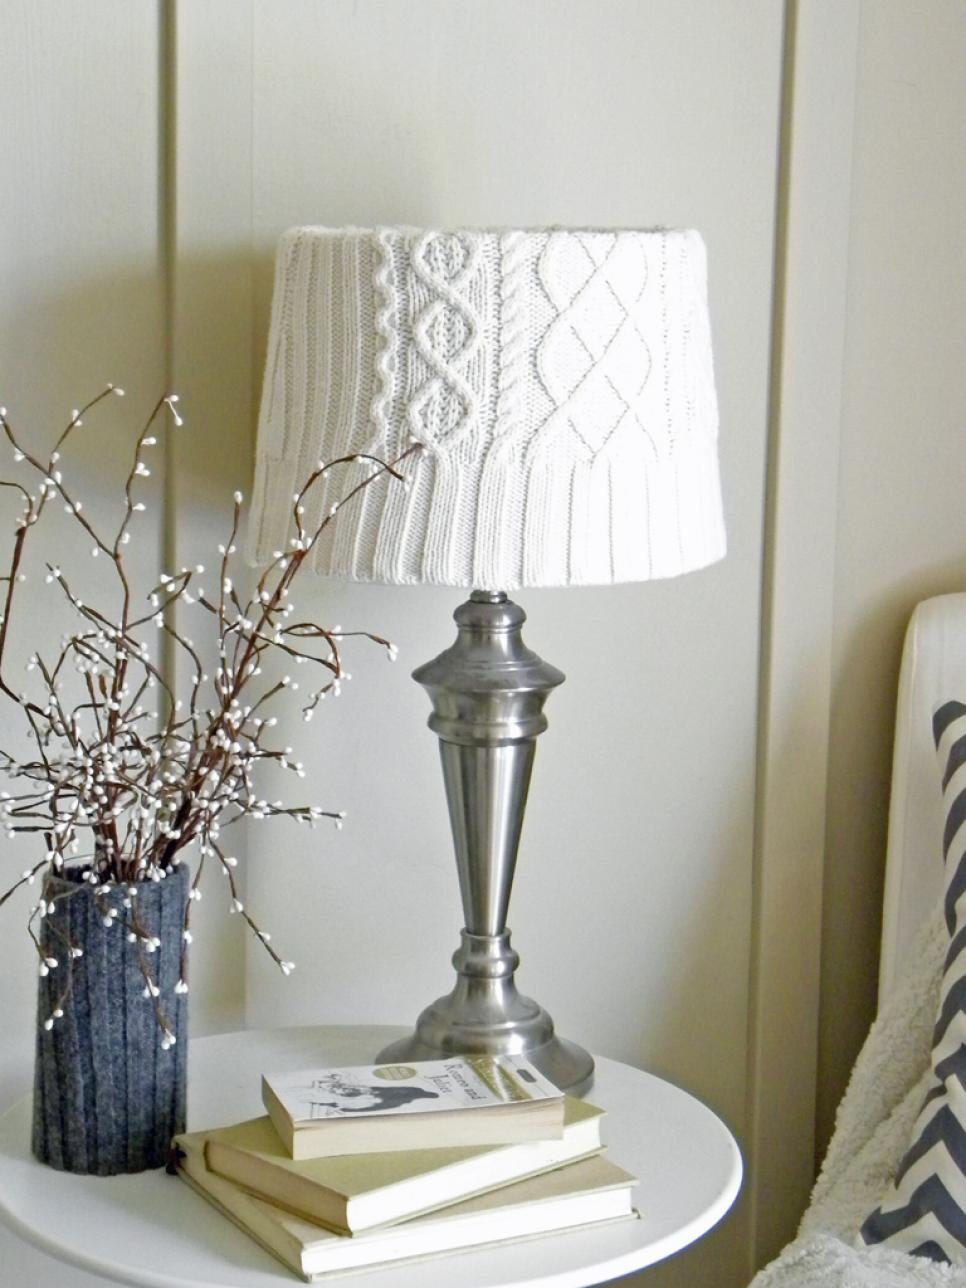 White Sweater-Covered Lampshade for Winter